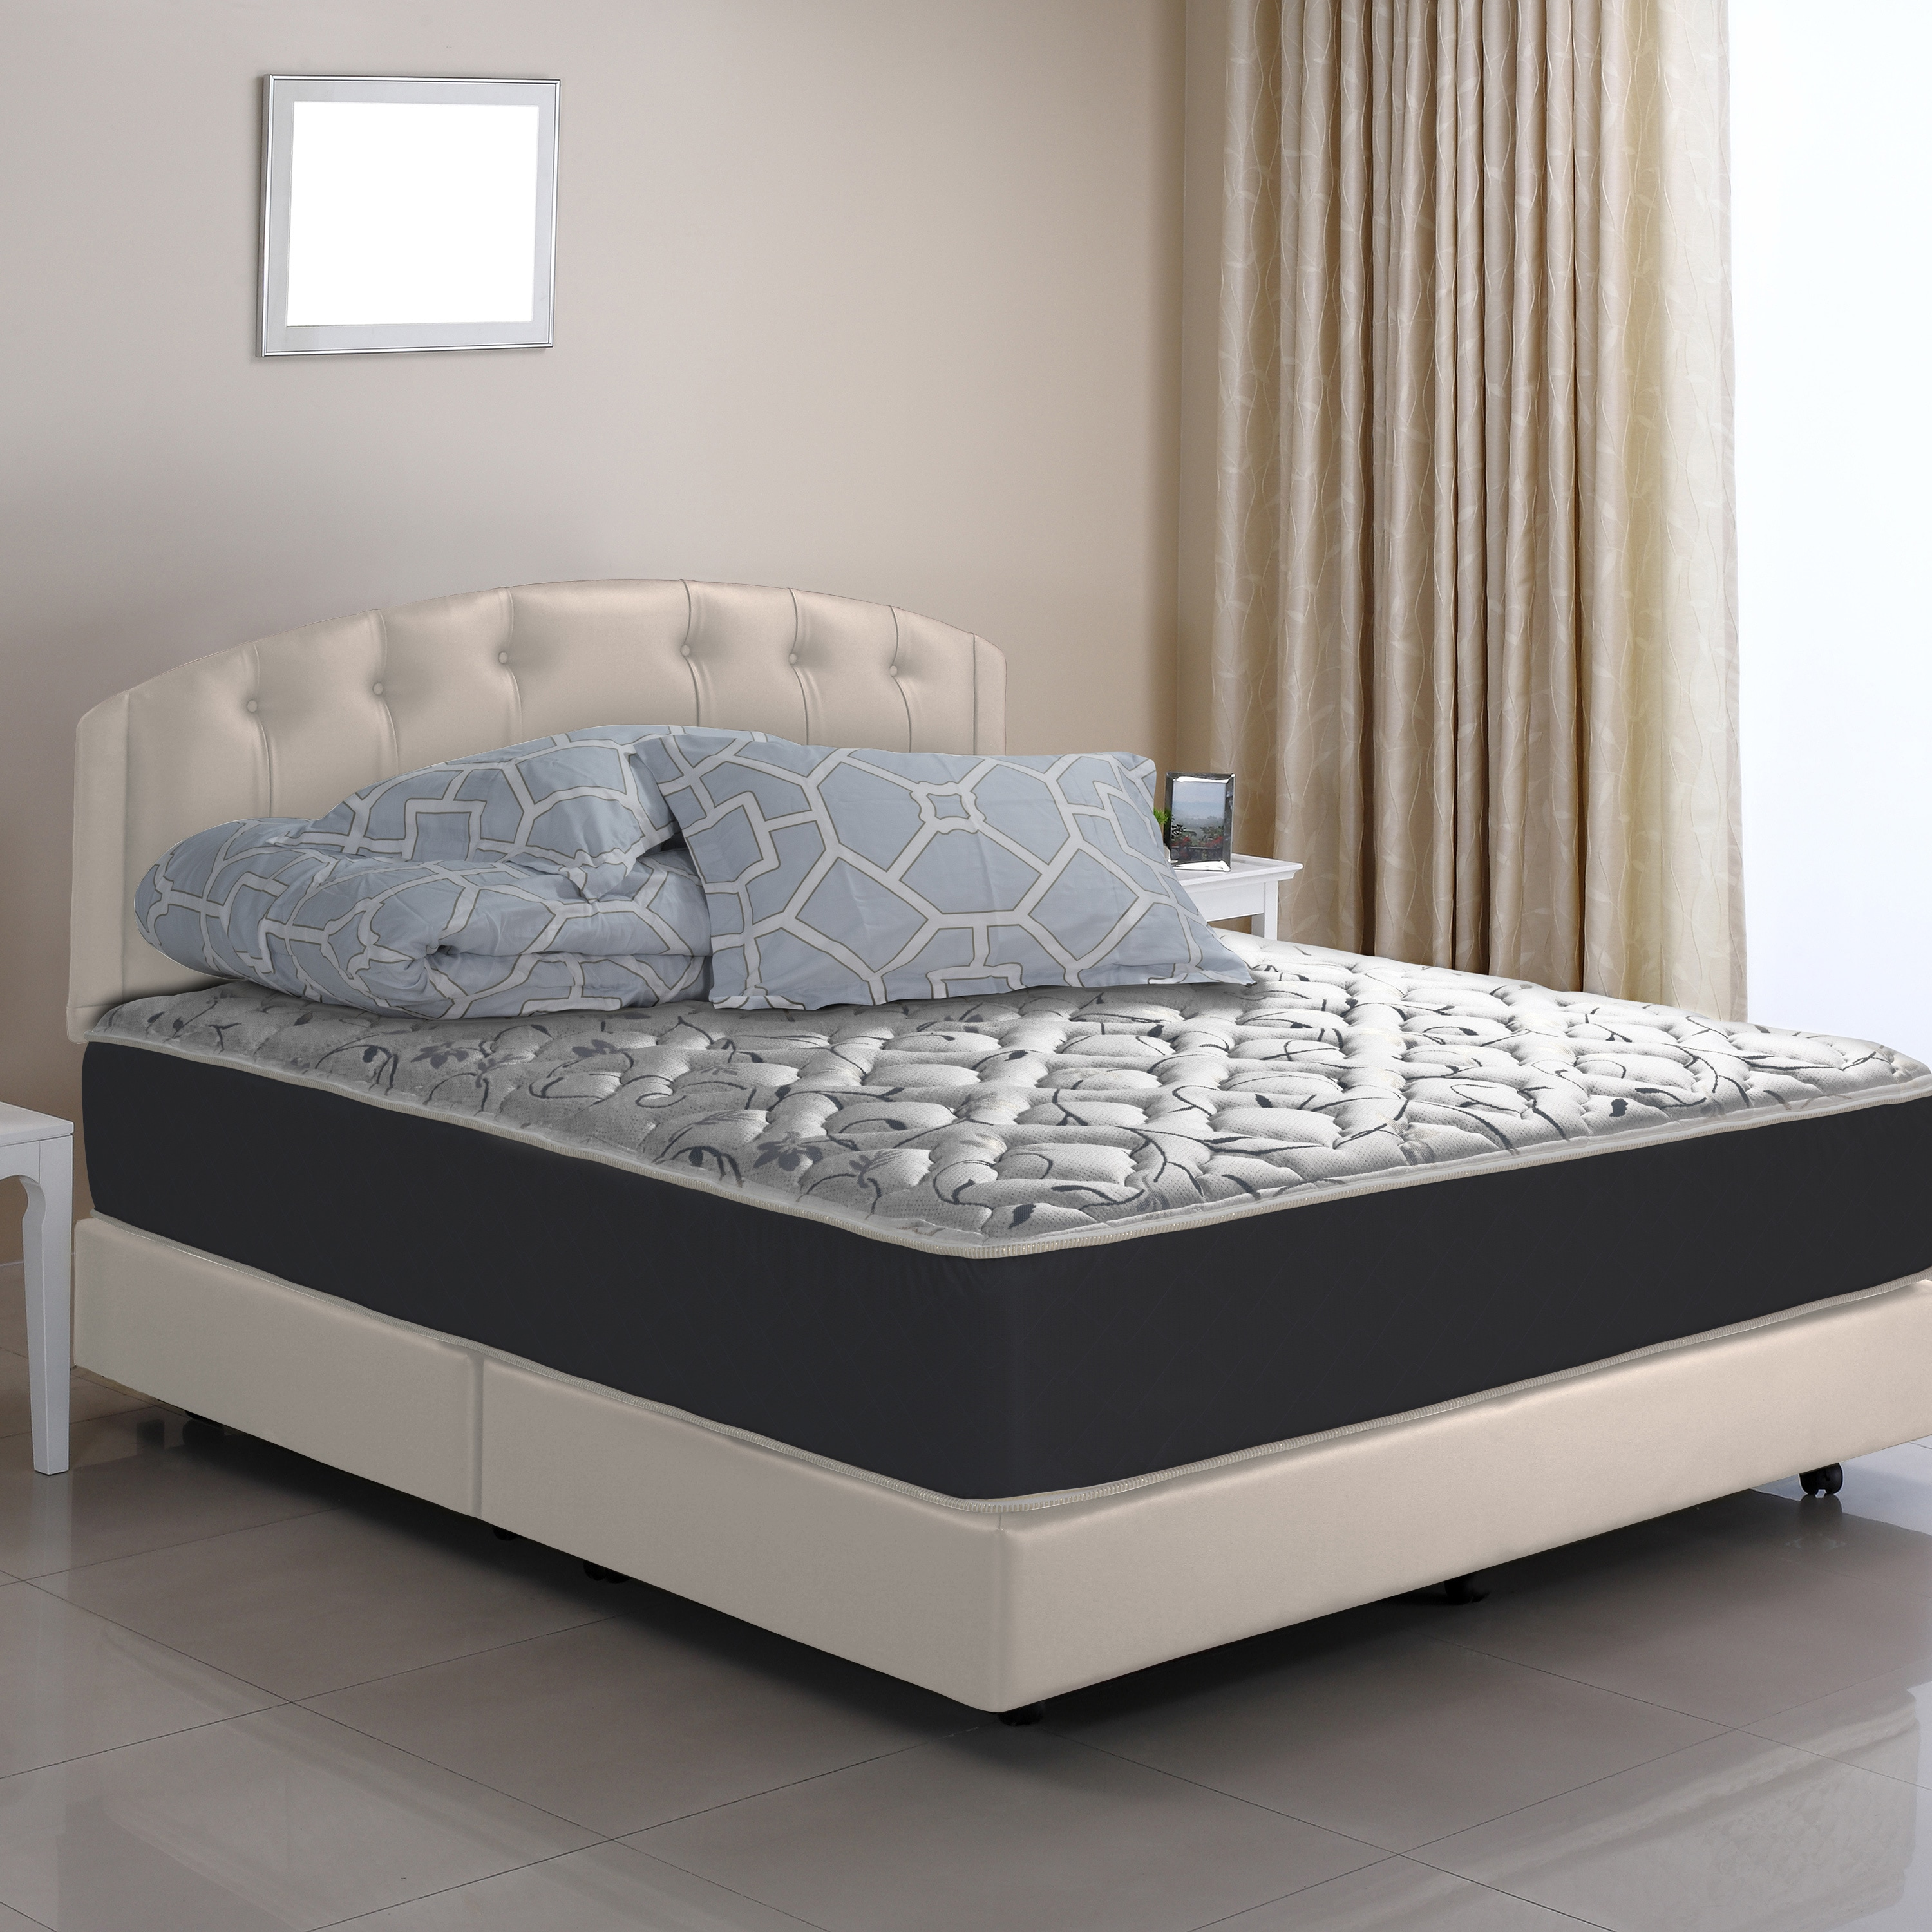 Firmest Mattresses On The Market Wolf Gemini Flippable Queen Size Wrapped Coil Innerspring Mattress